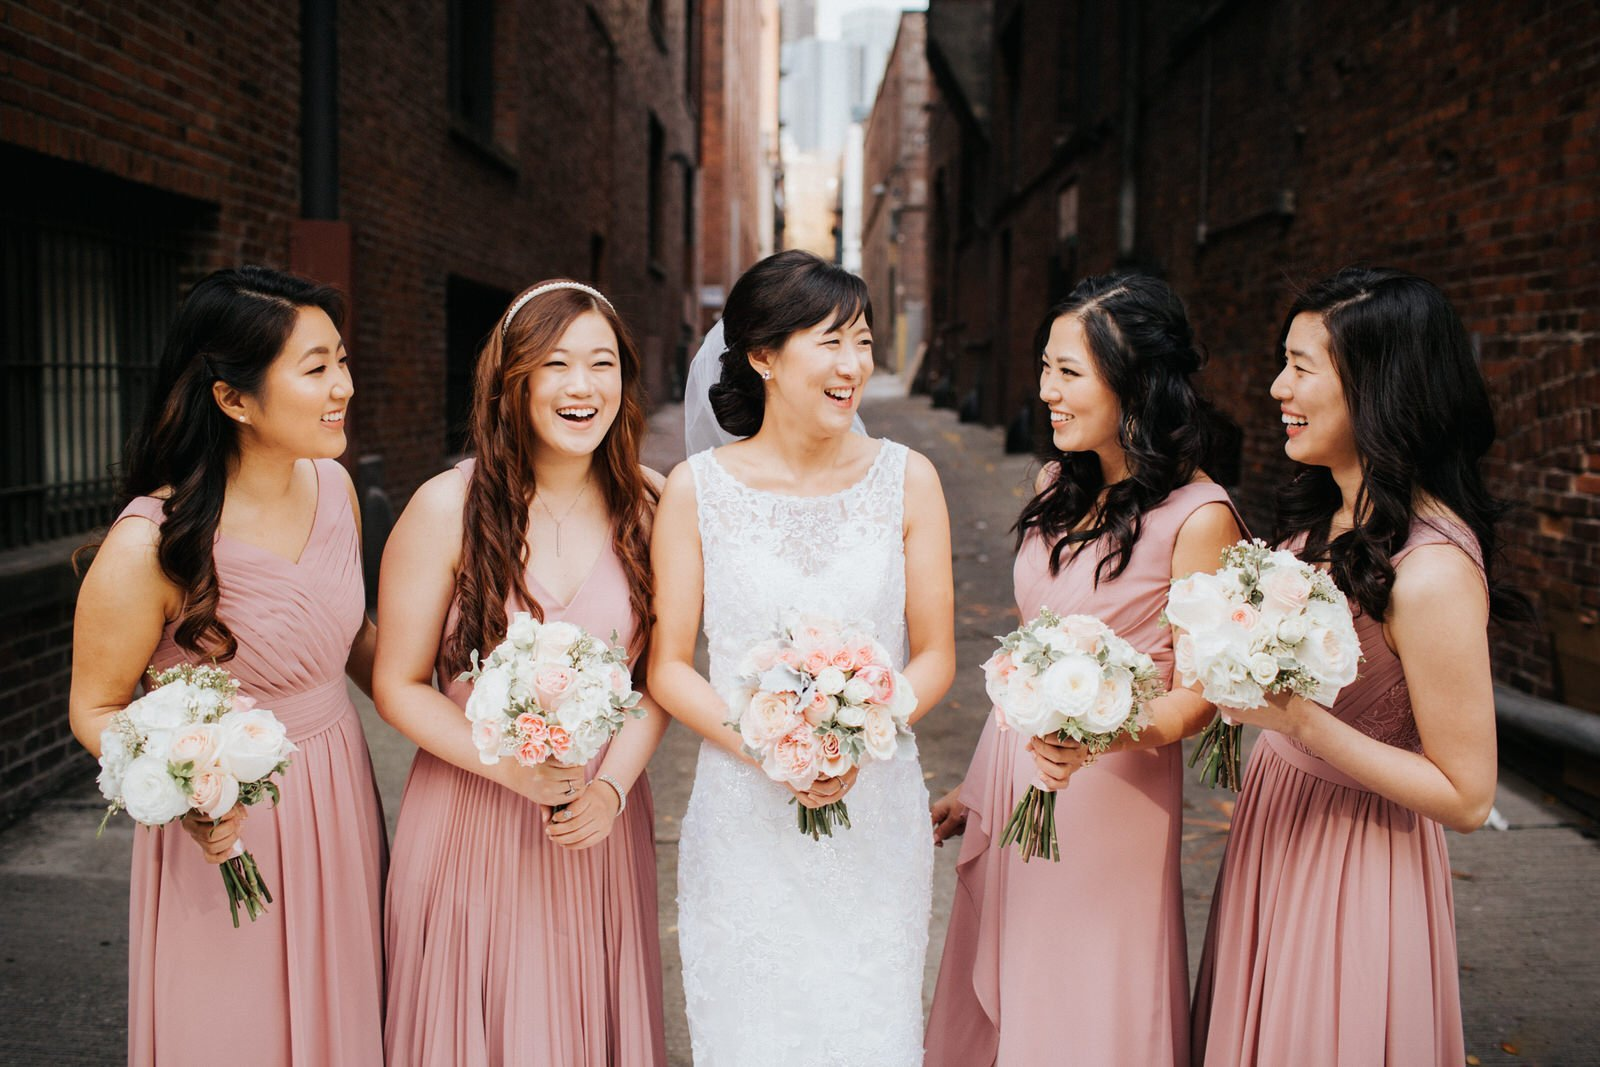 The bridesmaids laugh during photos in an alleyway in pioneer square